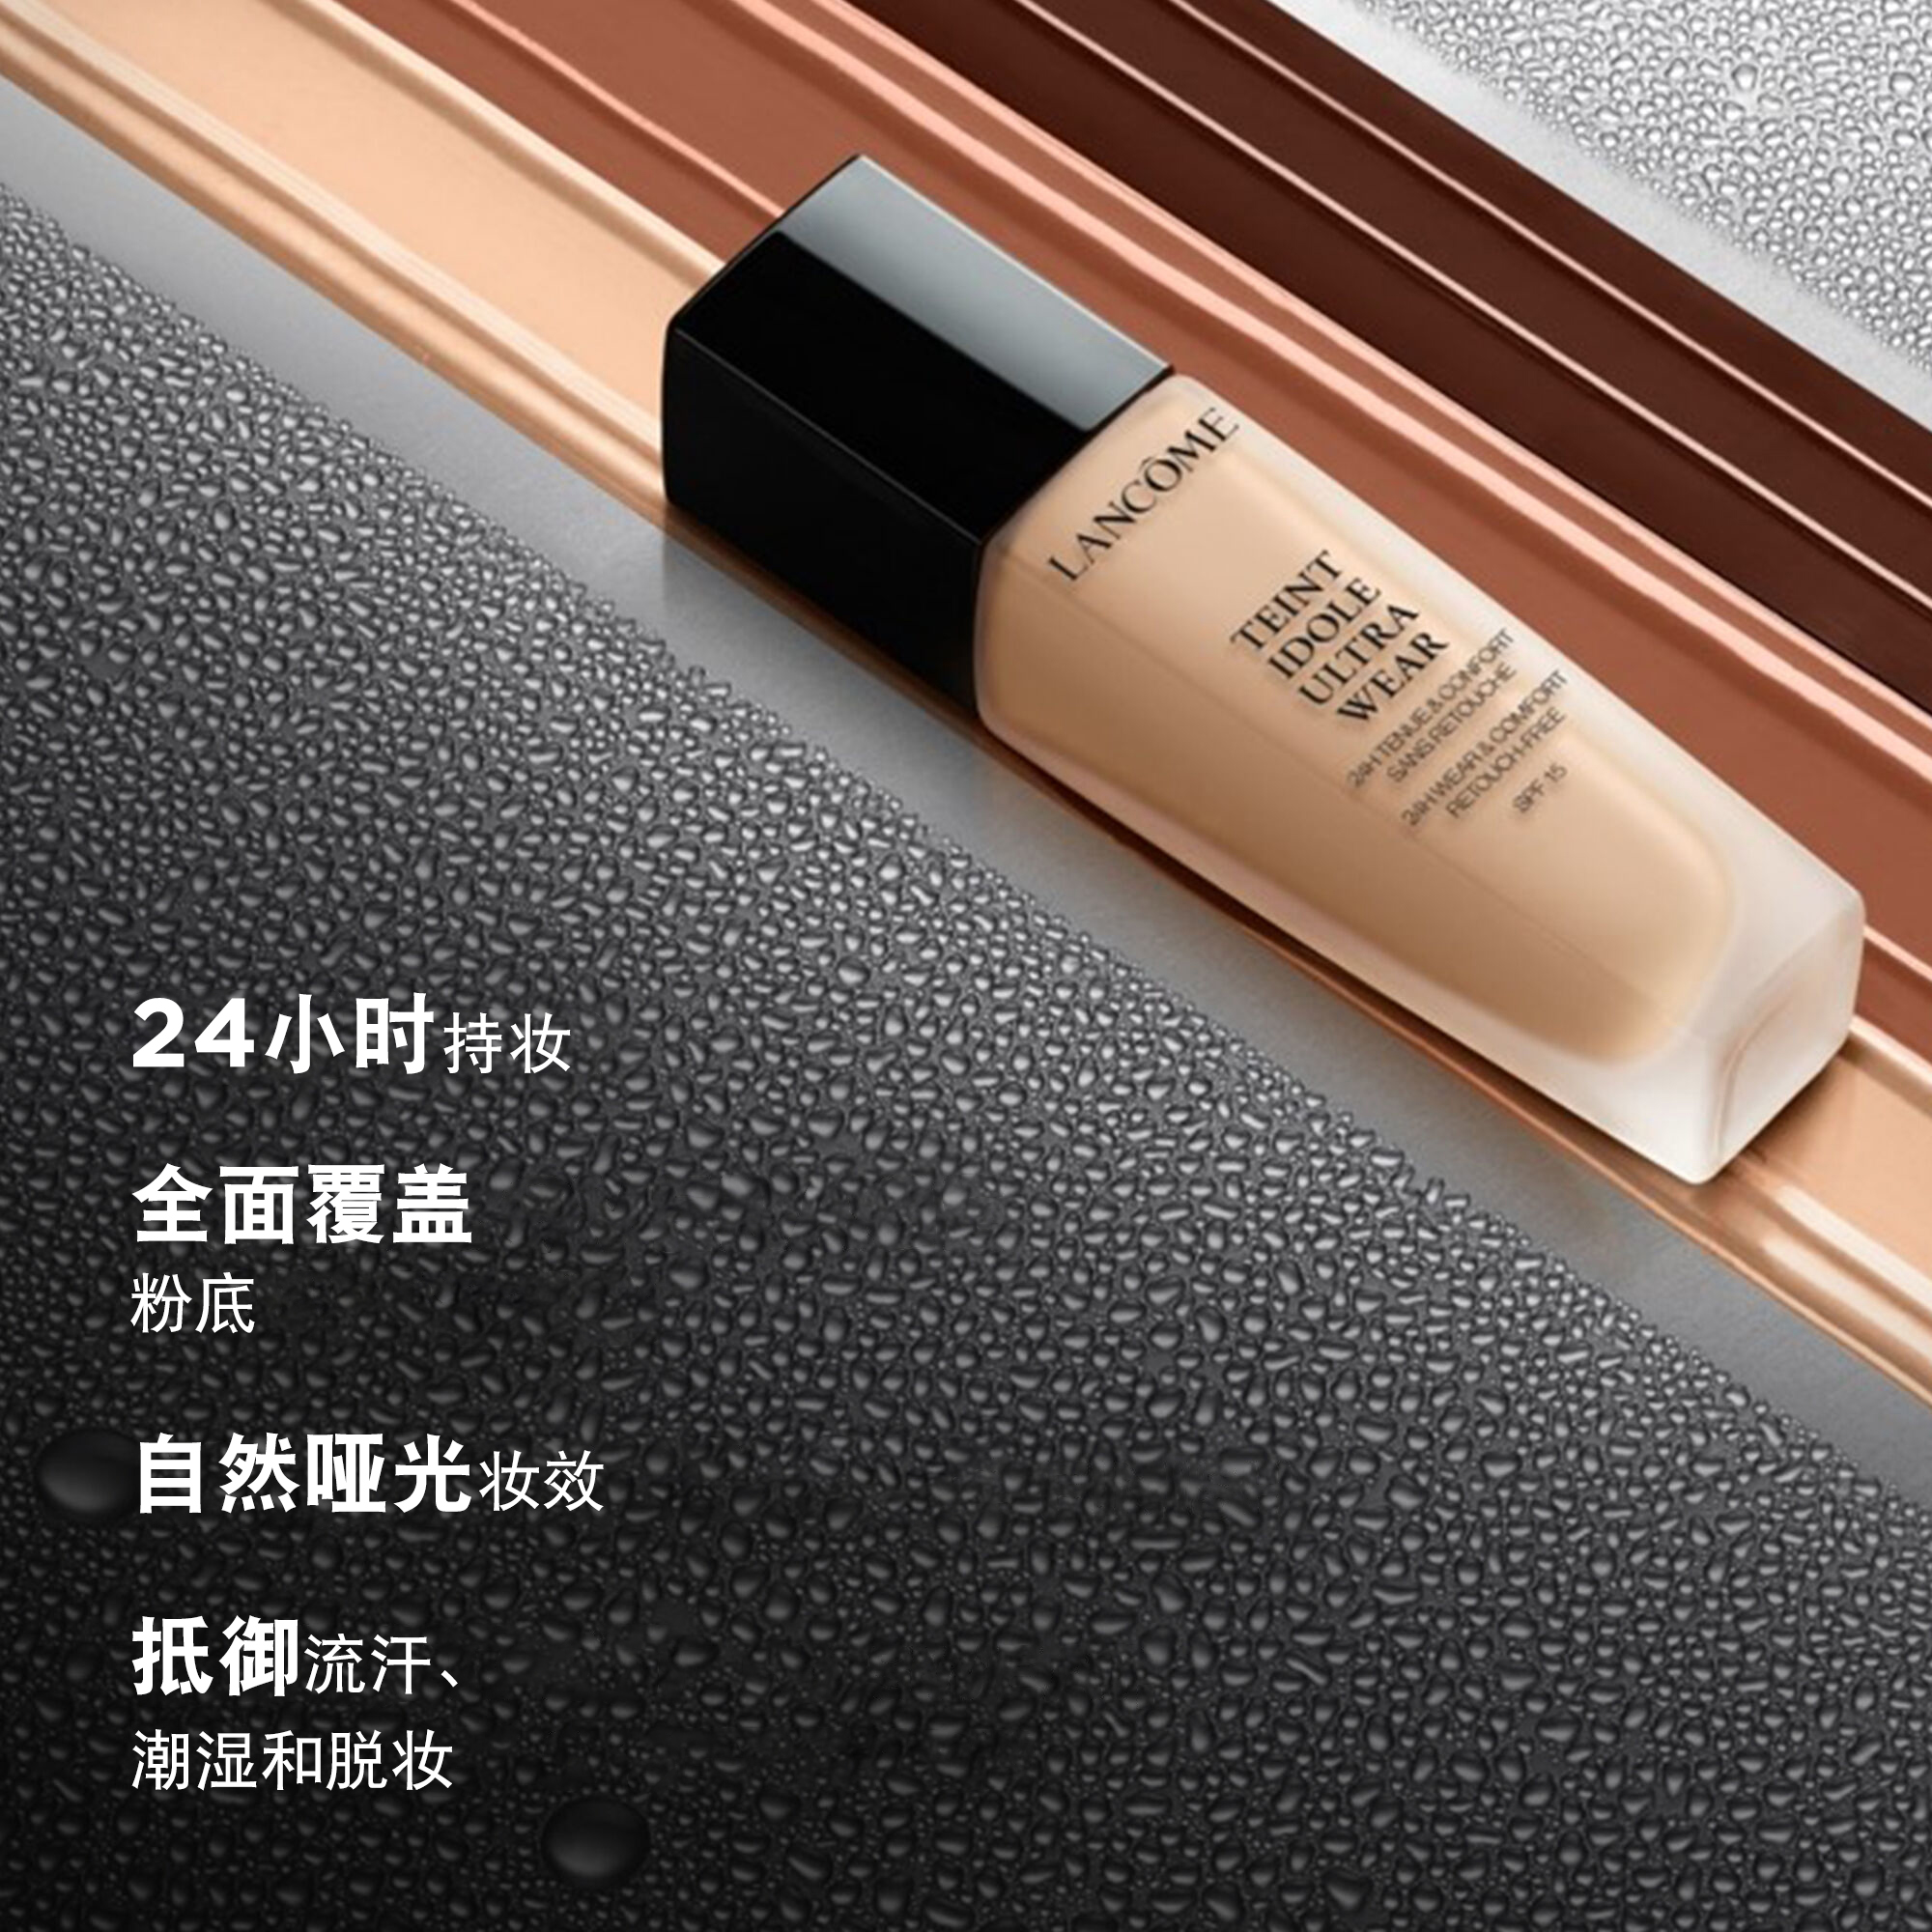 Teint Idole Ultra 24H Long Wear Foundation(24 小时无痕舒适粉底液)